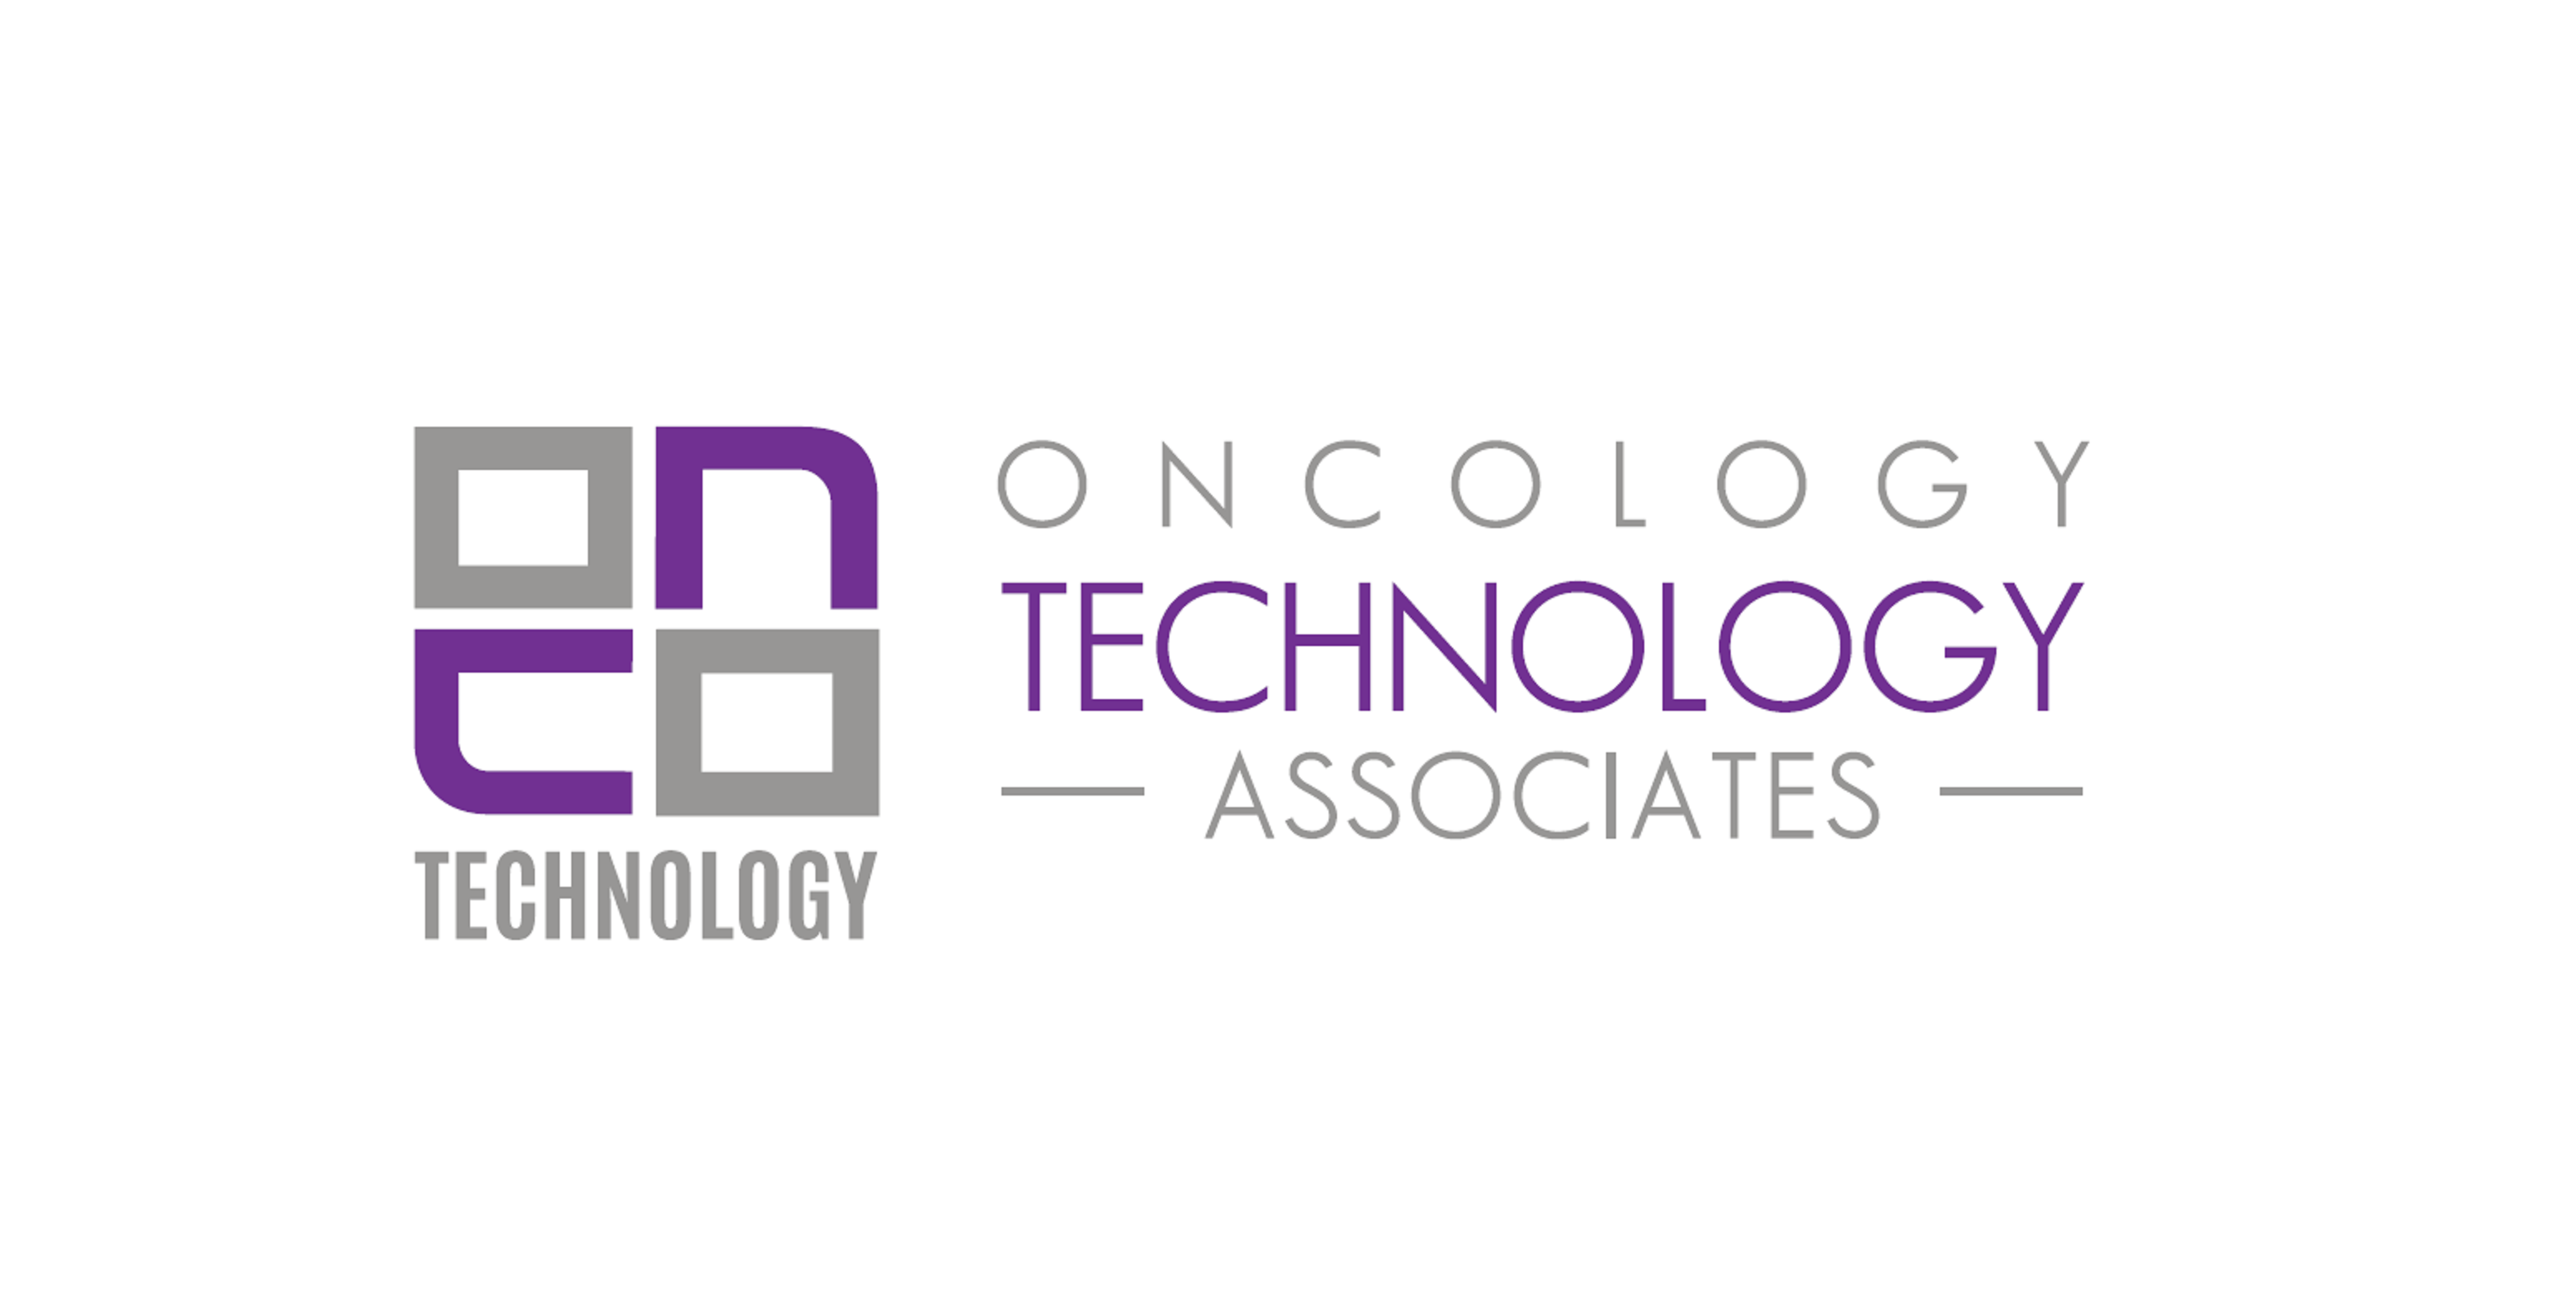 Oncology Technology Associates